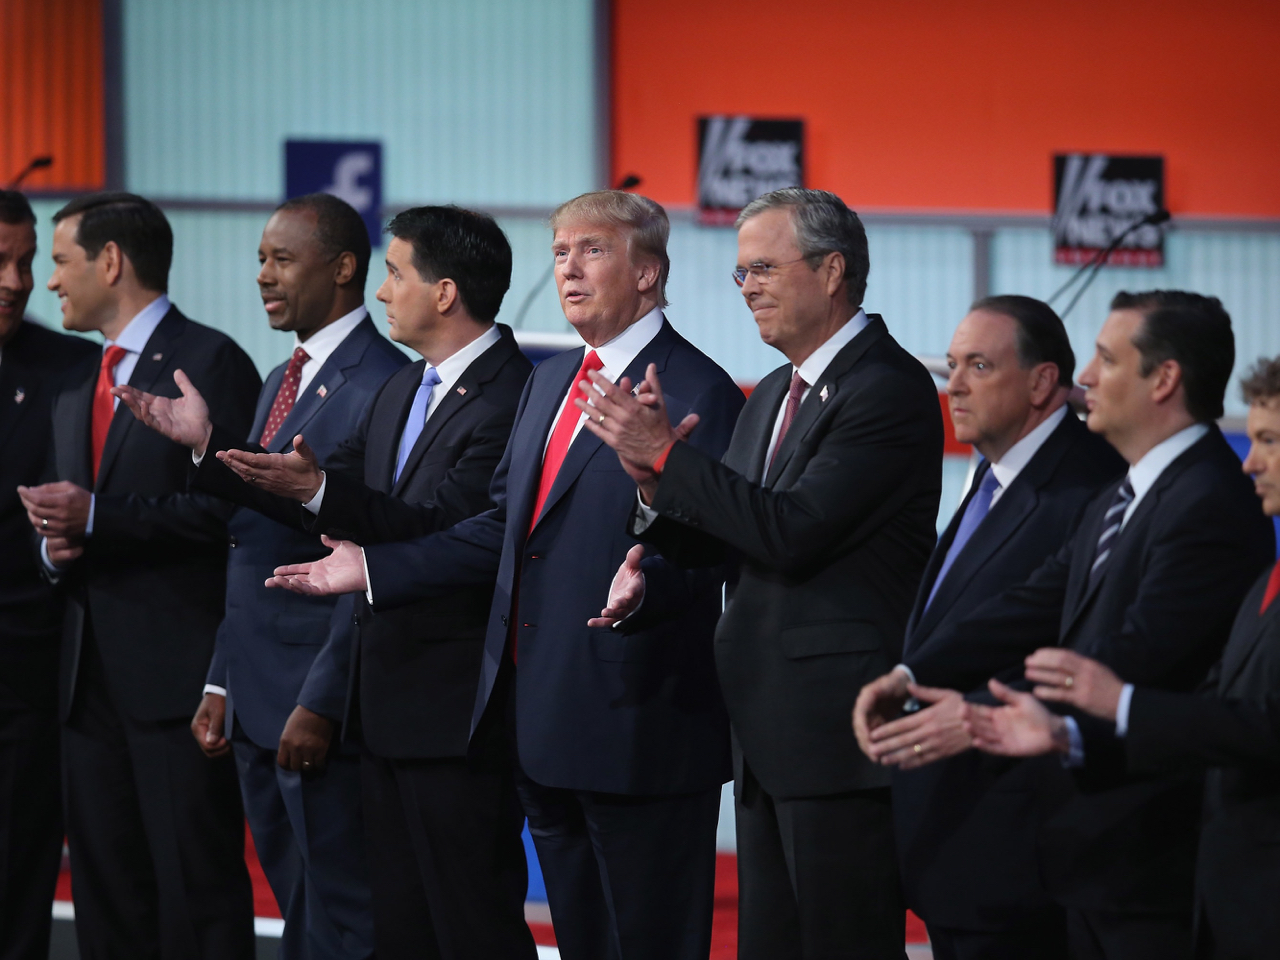 How The Republican Field Dwindled From 17 To Donald Trump